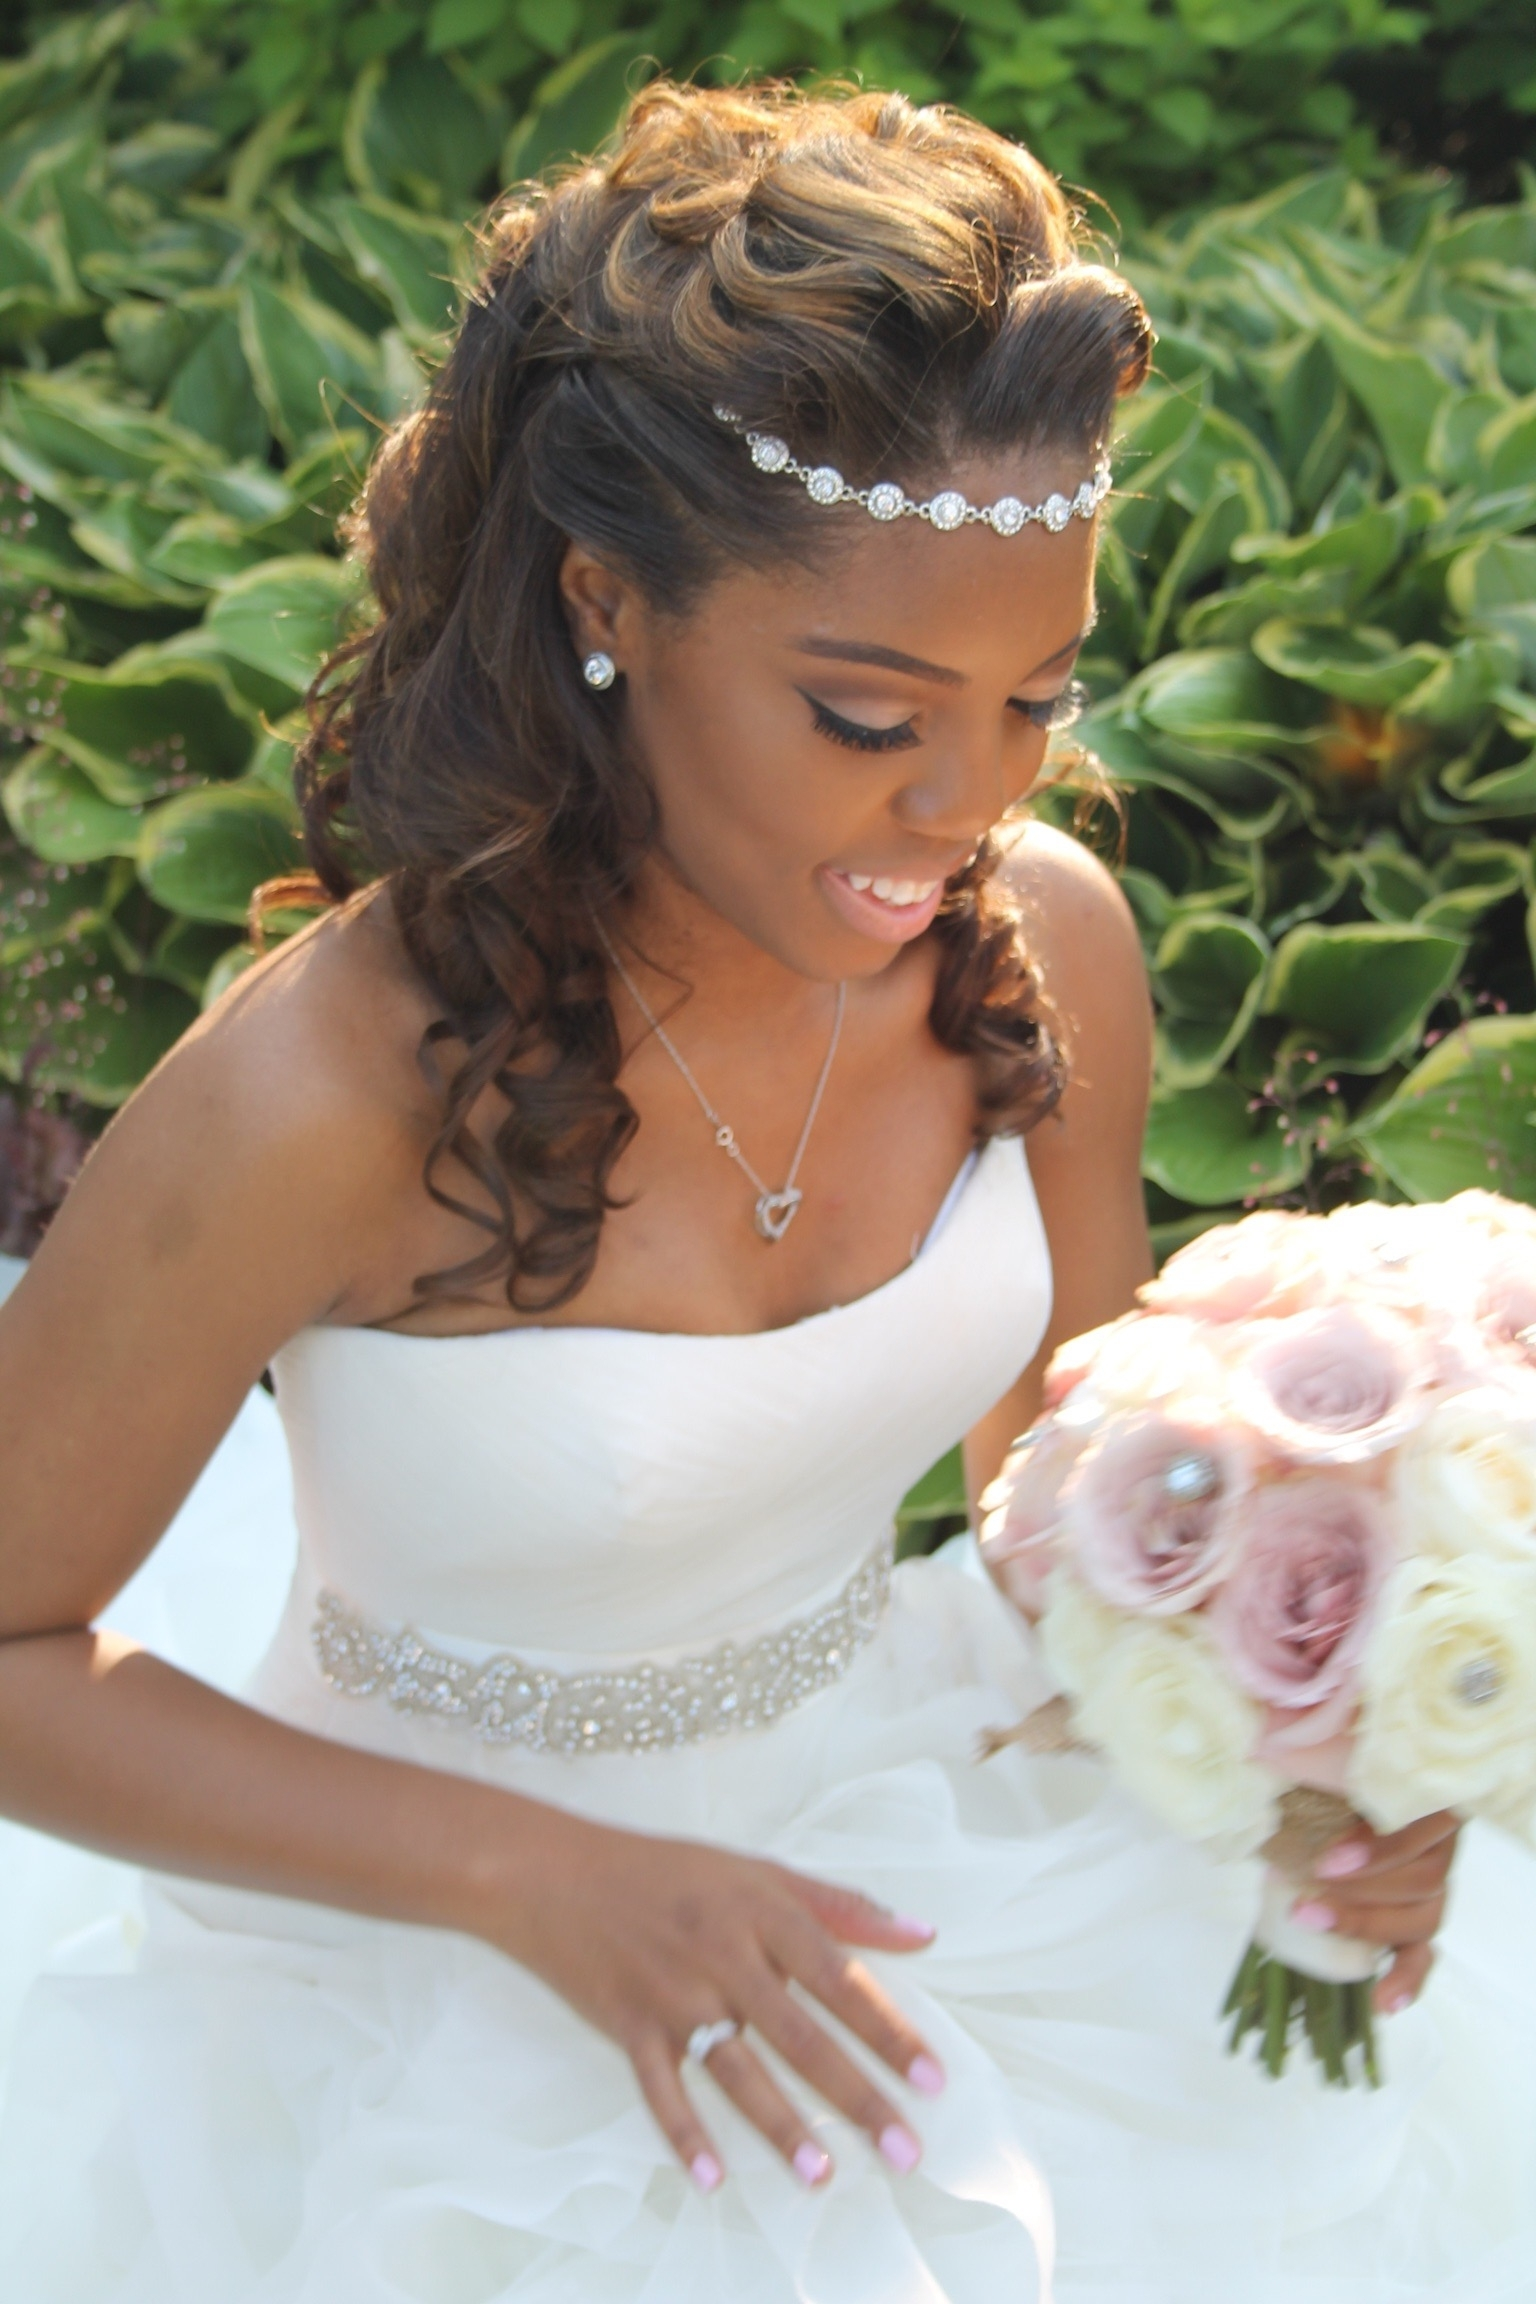 Remarkable Hairstyles For Brides For 43 Black Wedding Hairstyles For Throughout Most Current Wedding Hairstyles For Black Woman (View 10 of 15)